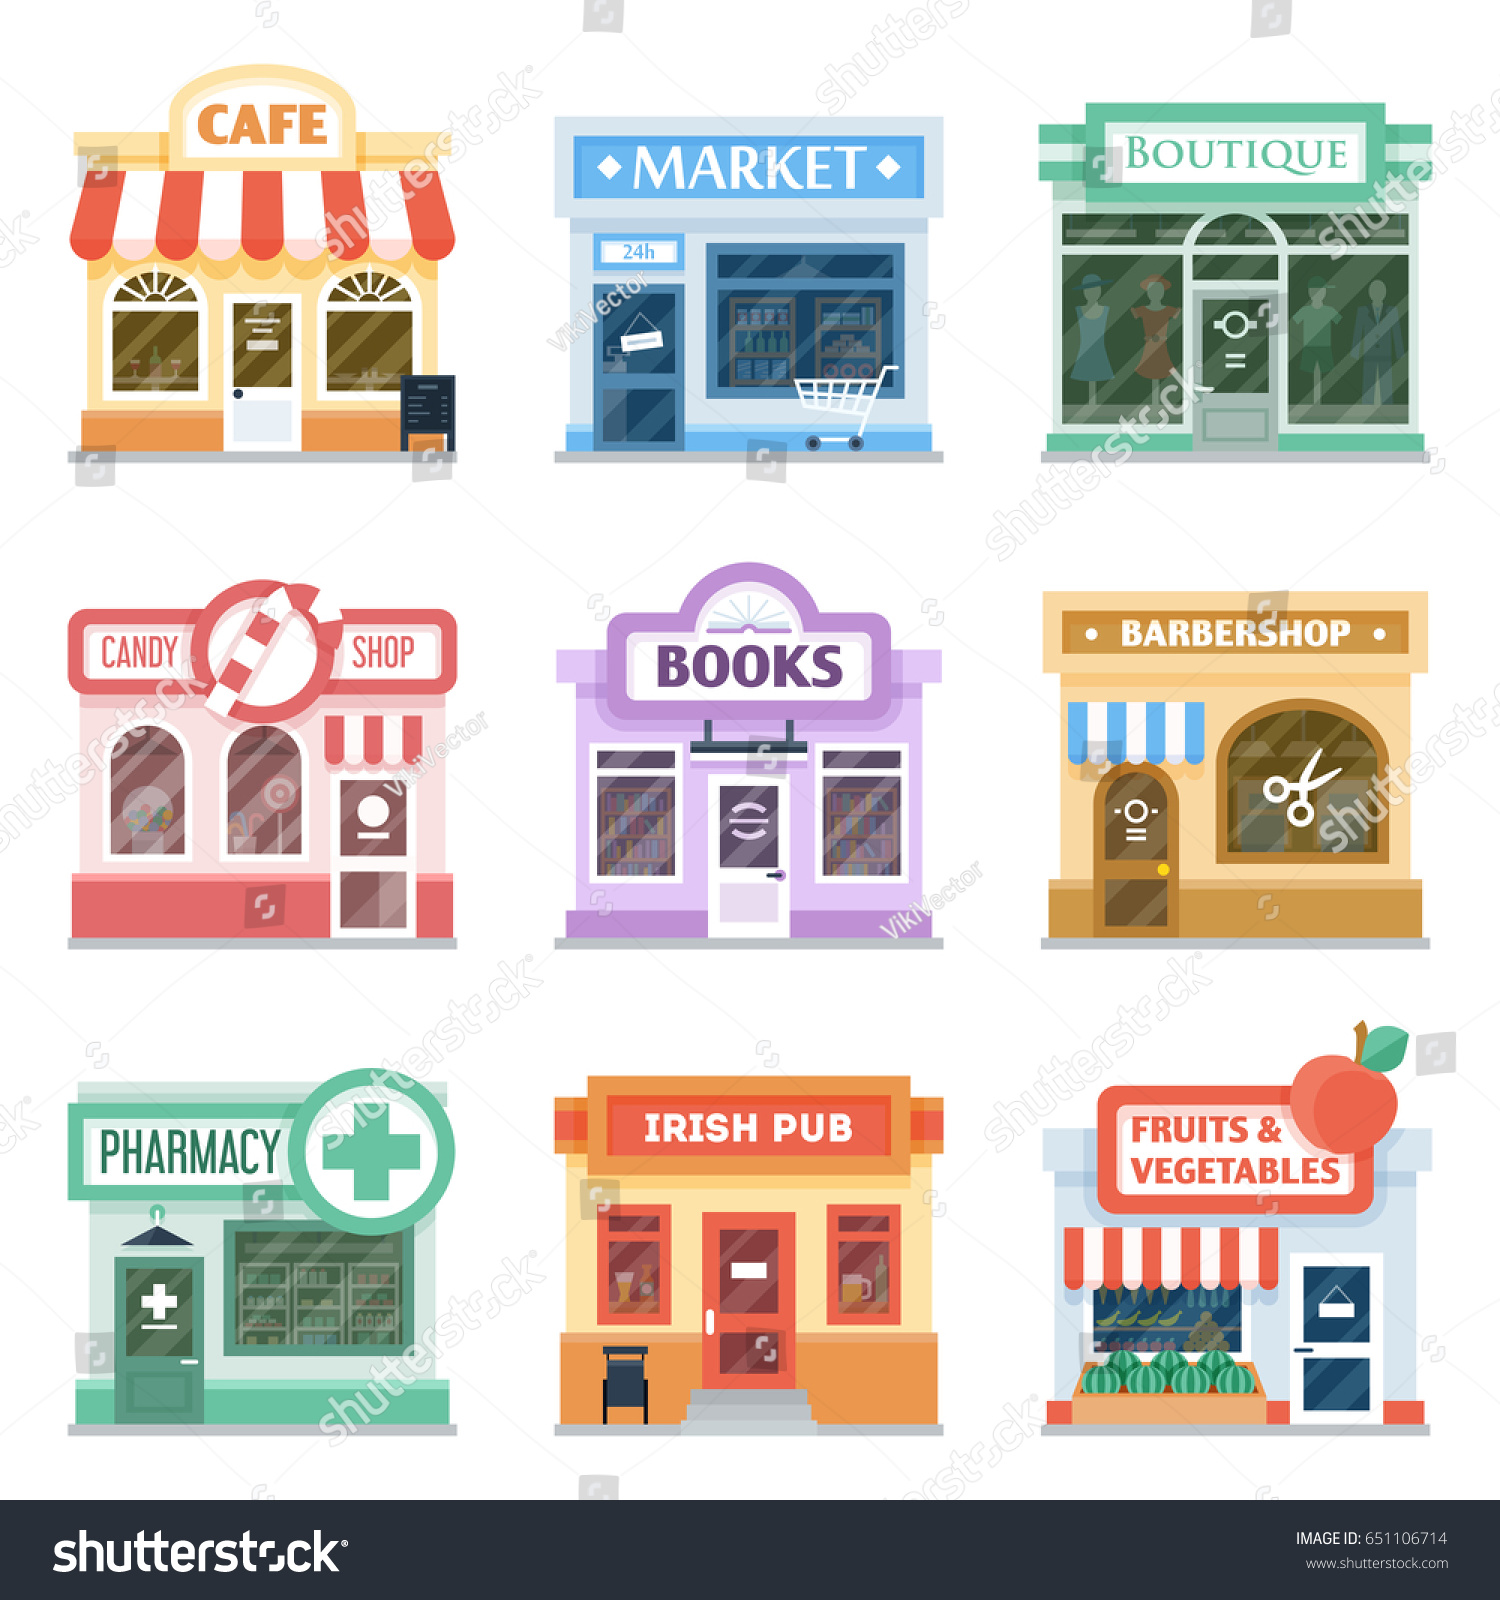 Shop front design ideas collection retail stock vector for Shop front design ideas